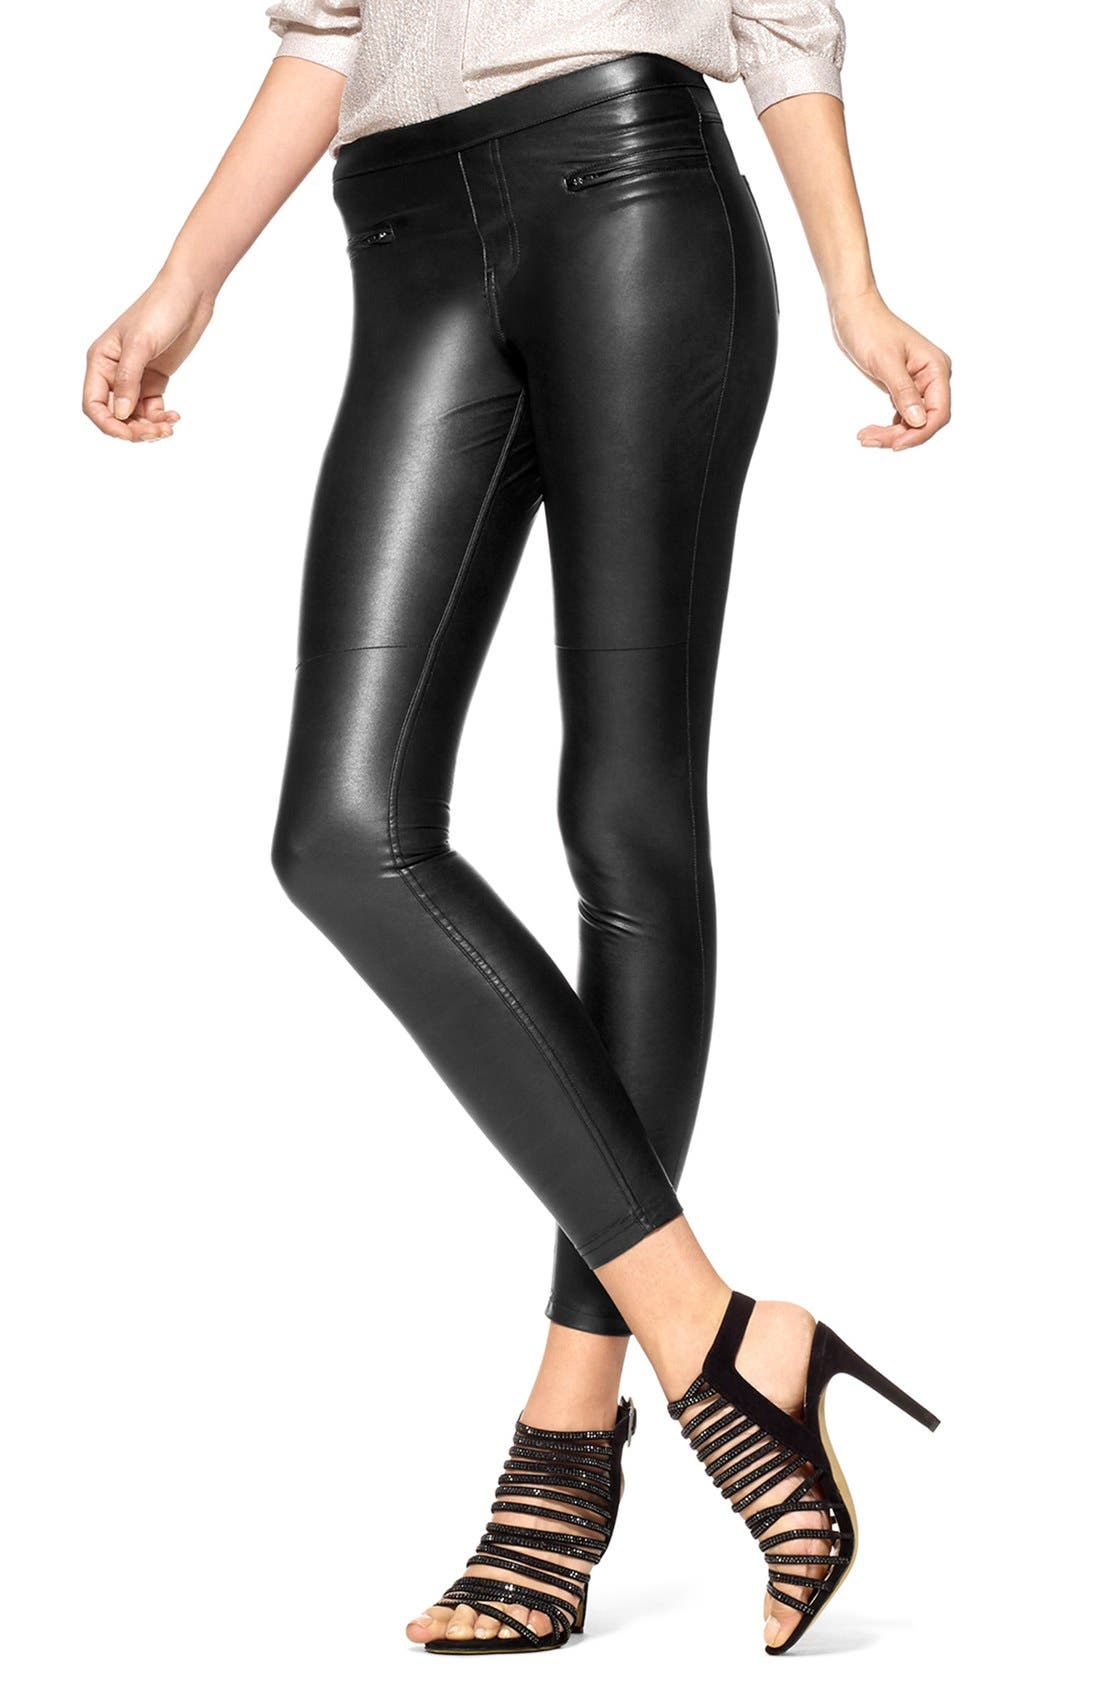 HUE 'Leatherette Skimmer' Faux Leather Leggings, Main, color, 001